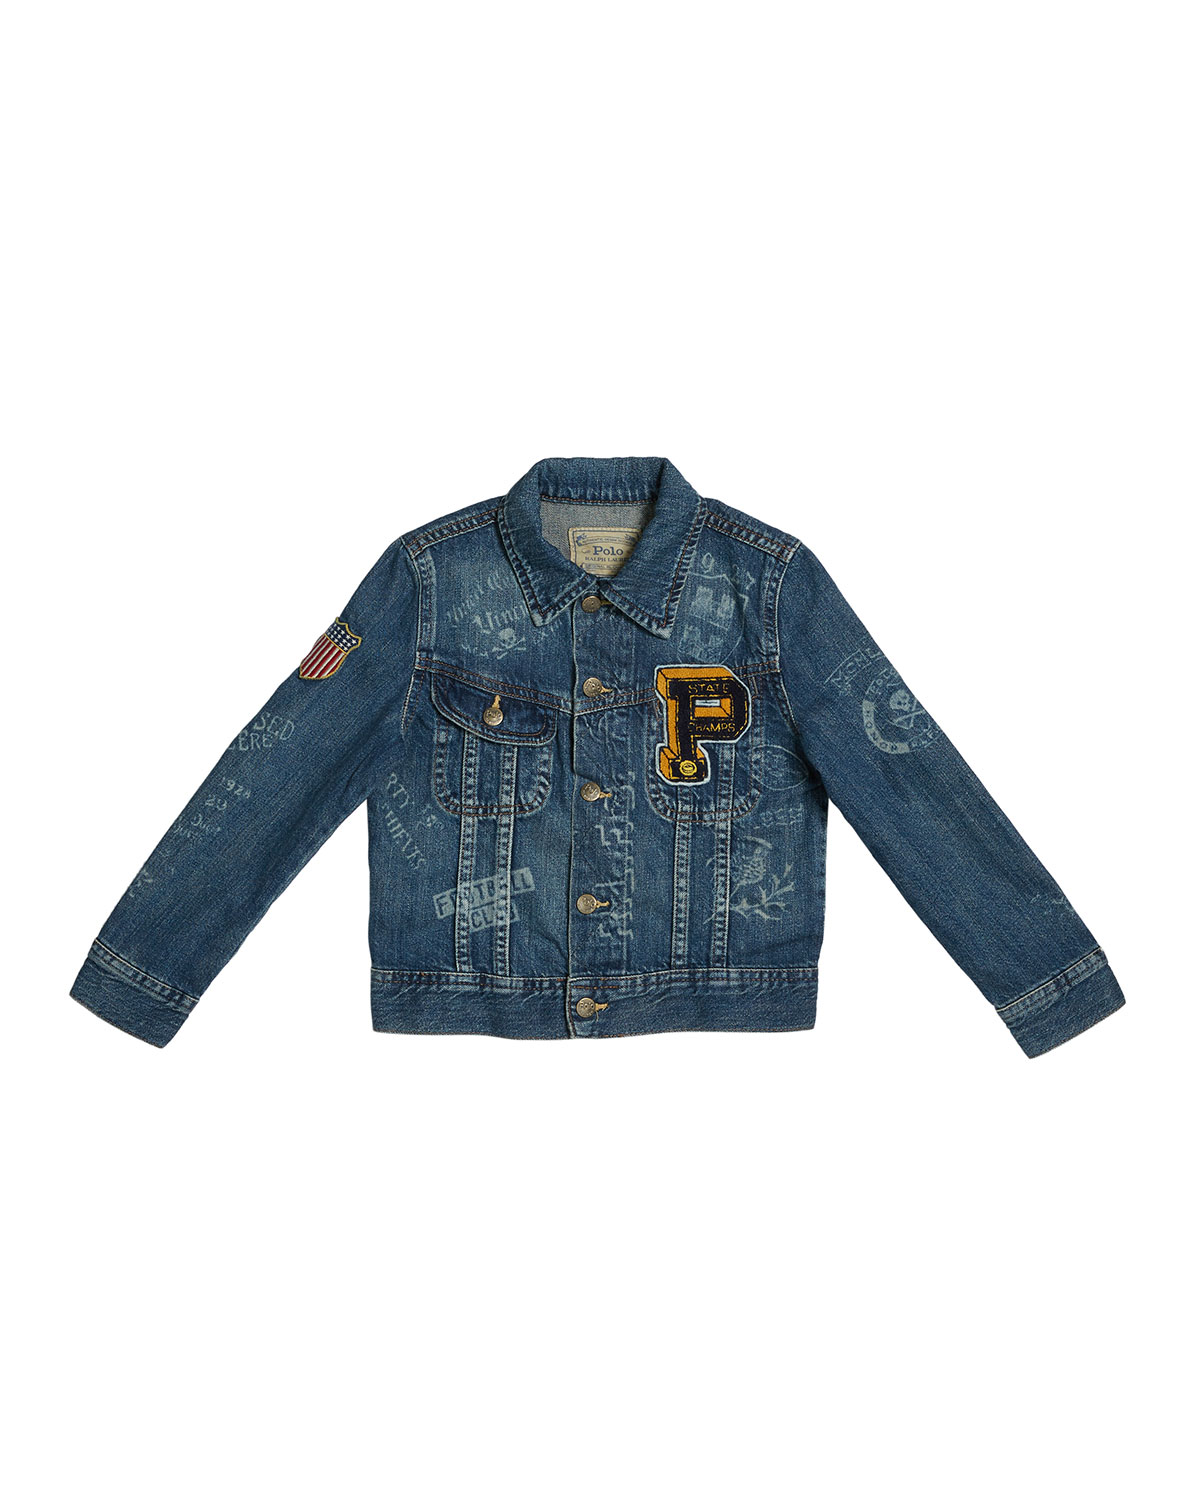 Ralph Lauren Childrenswear Kids' Logo Embroidered Denim Jacket In Blue